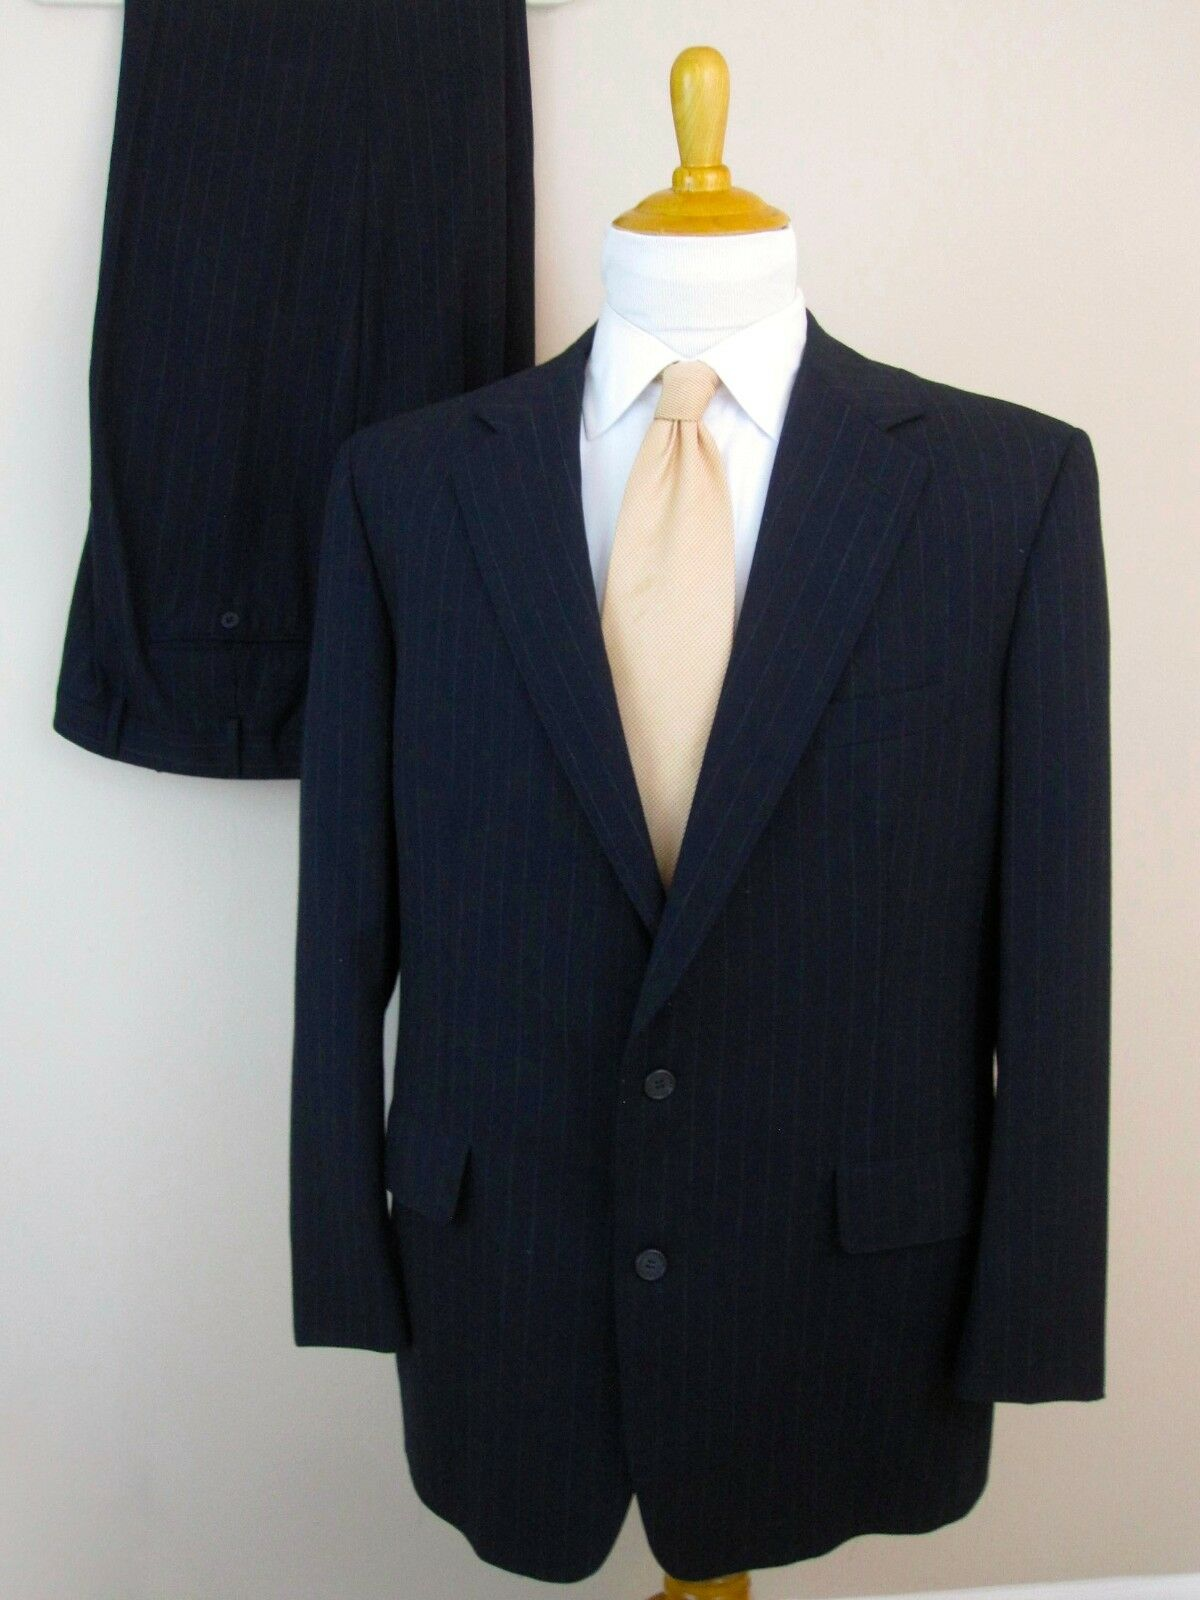 Brooks Brothers Suit 41R Blau Pinstripes 100% Wool 2 Buttons Pants 37 X 30